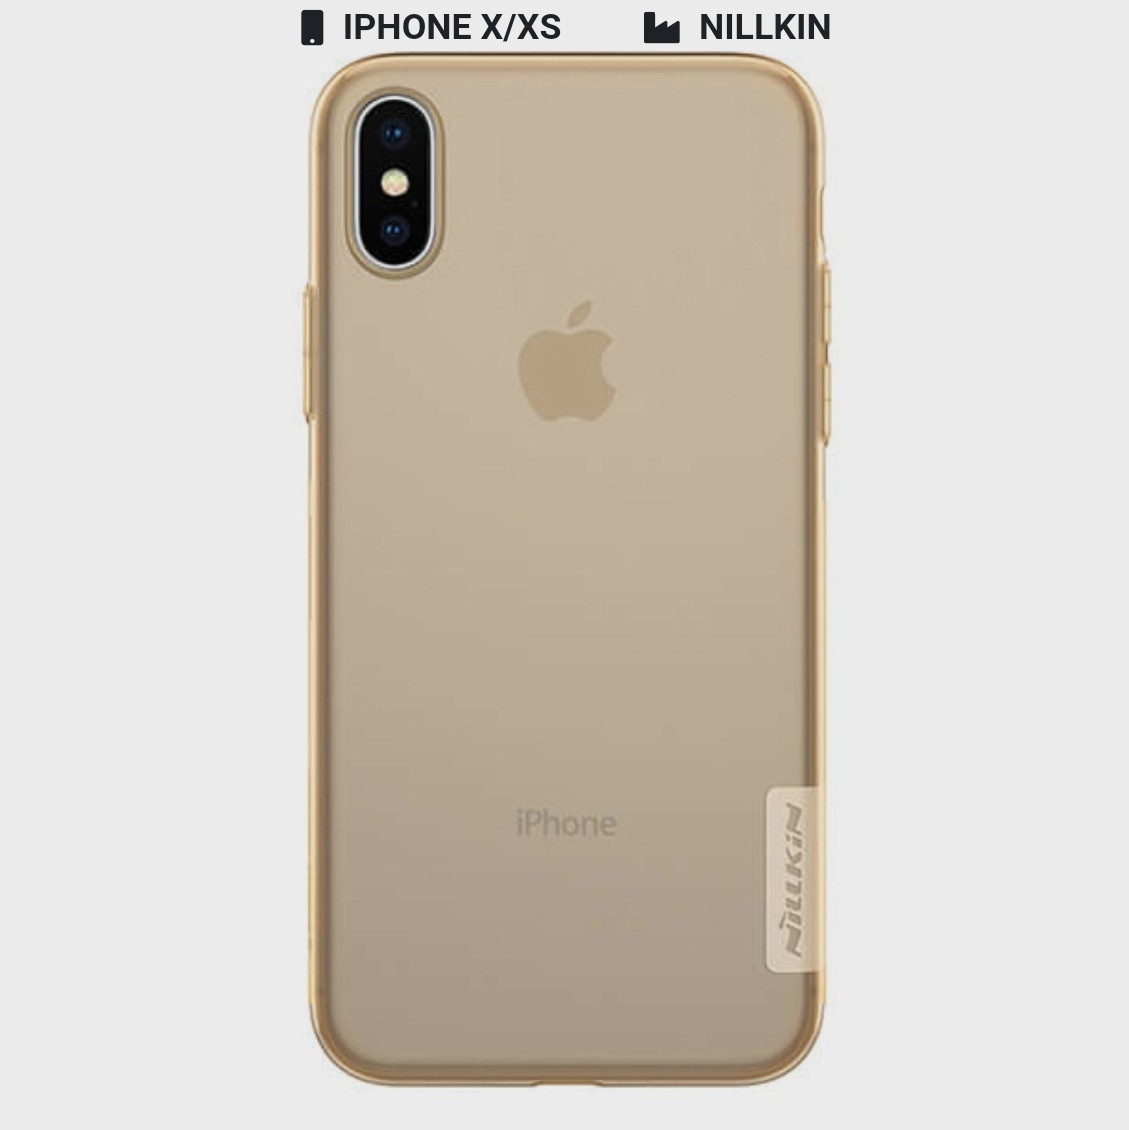 Захисний чохол Nillkin для Apple iPhone X / iPhone XS Nature TPU Series Brown